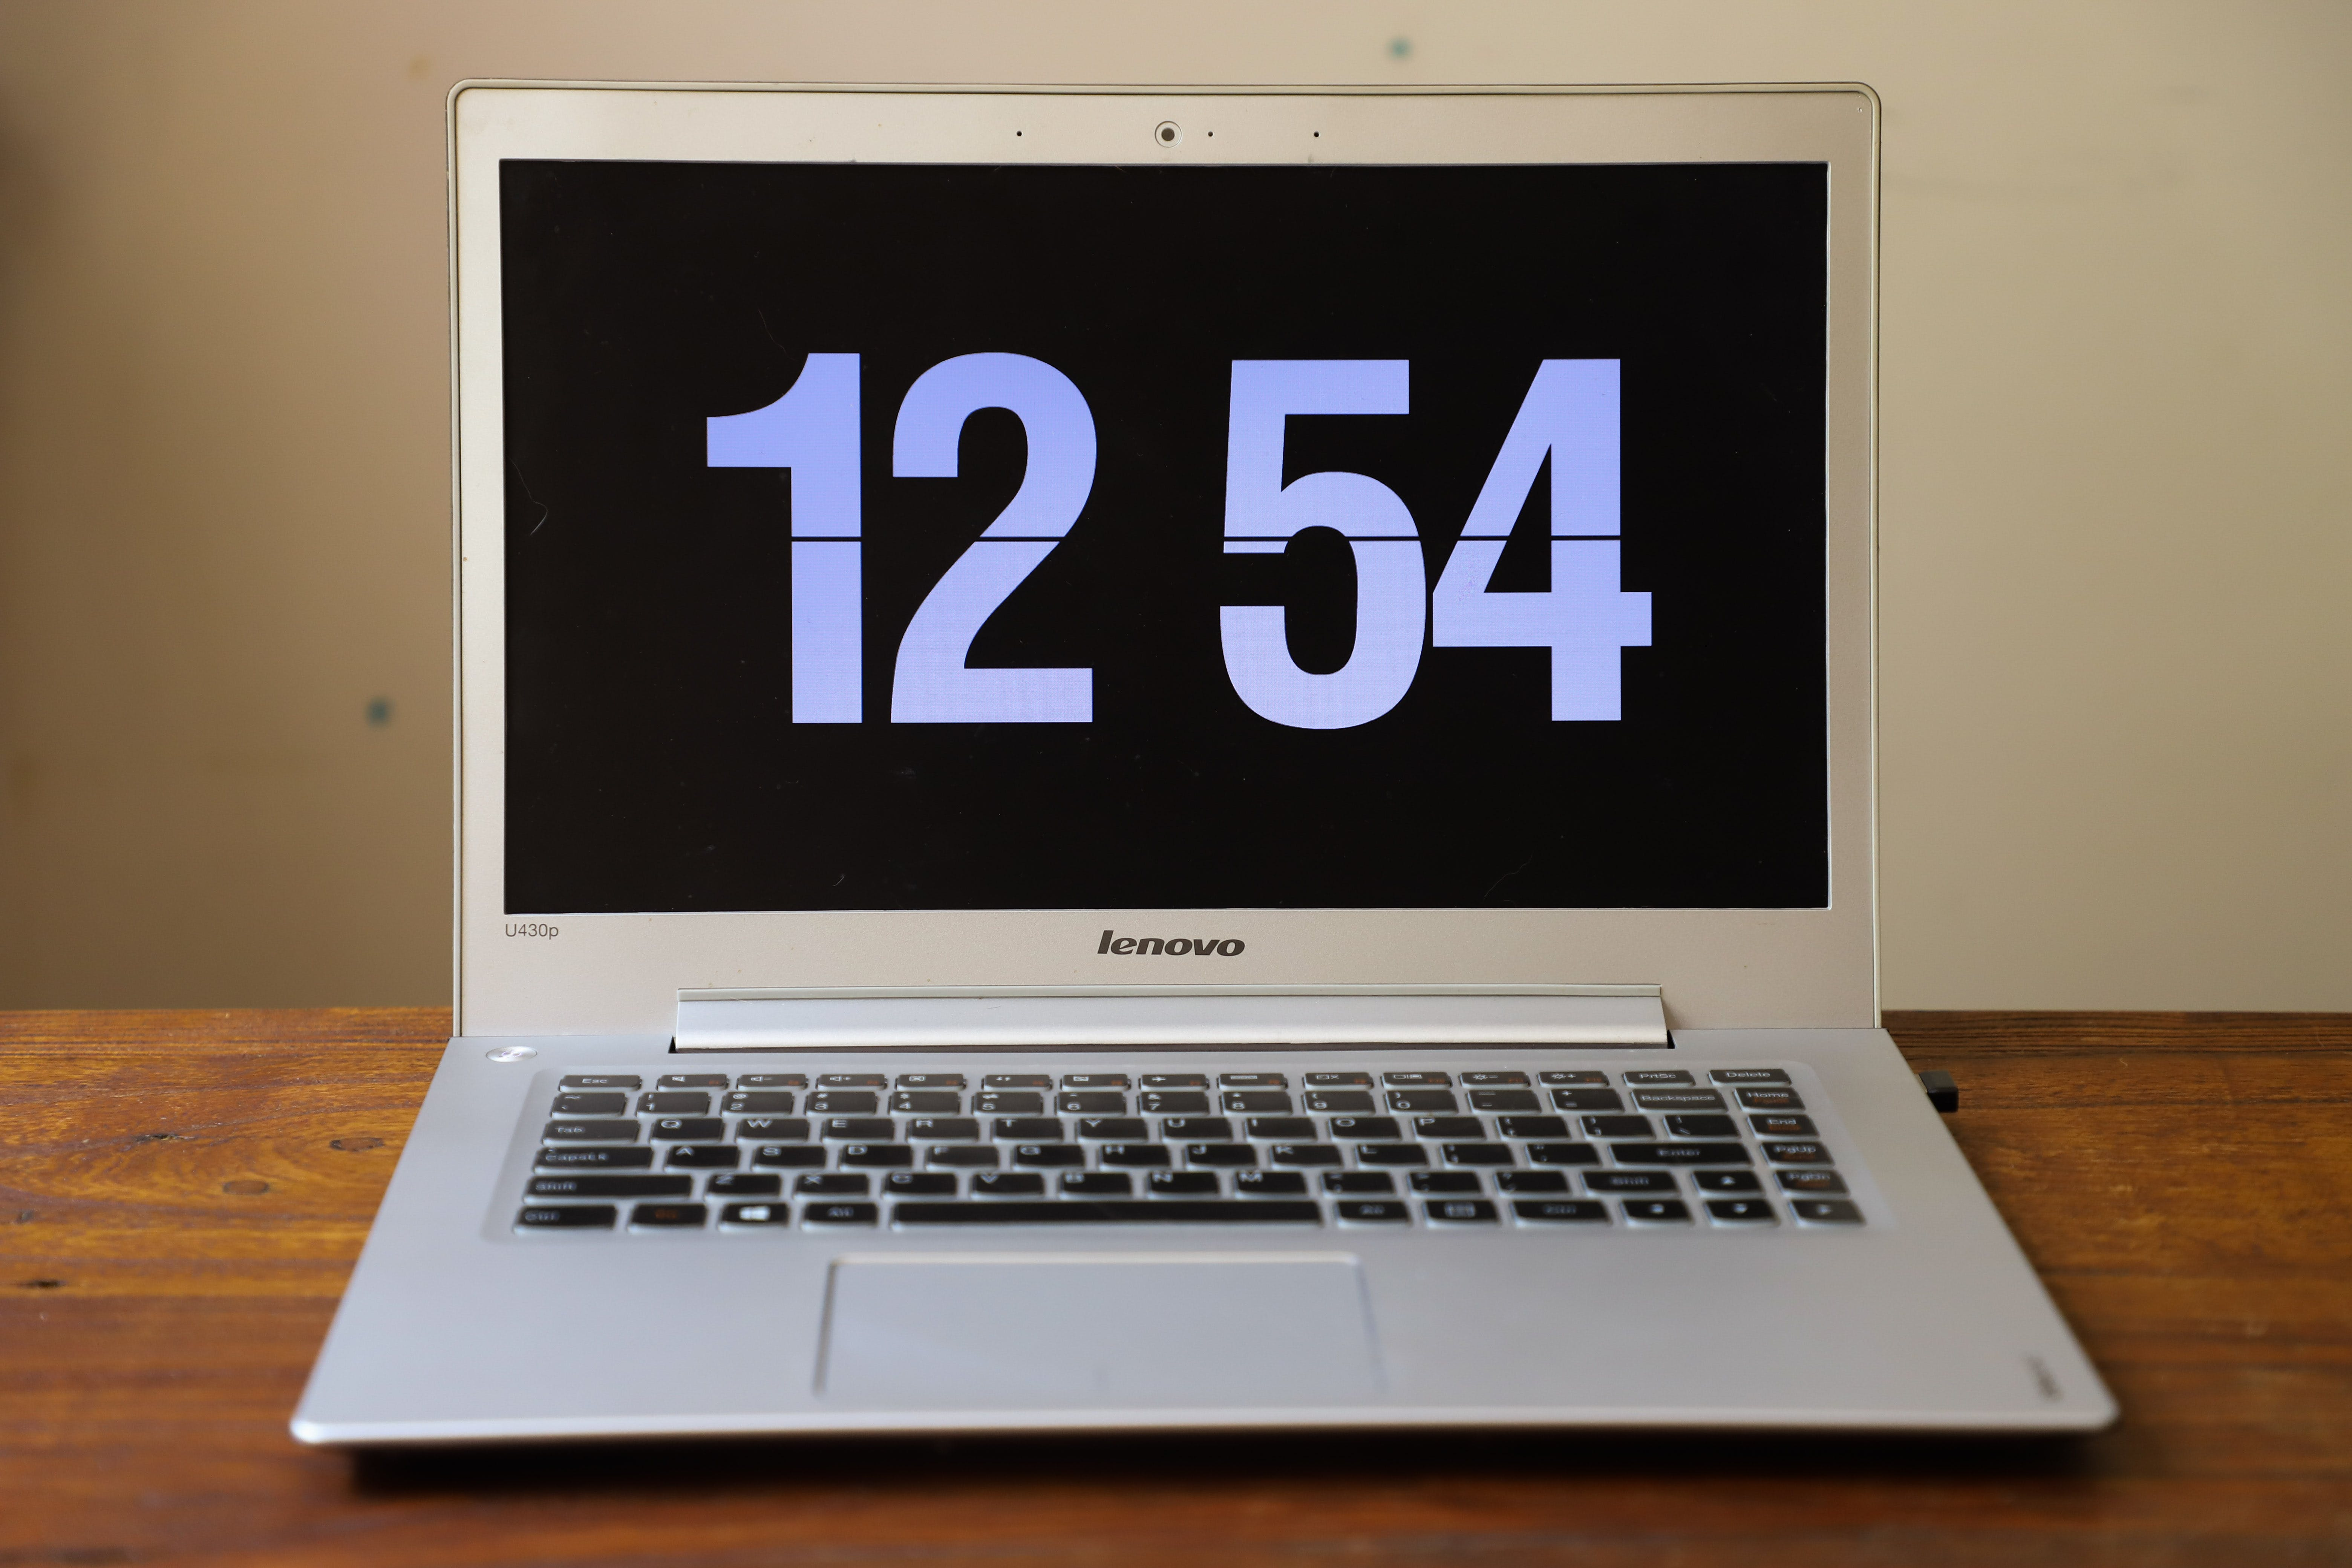 Turned-on Silver Lenovo Laptop Displaying Clock at 12:54